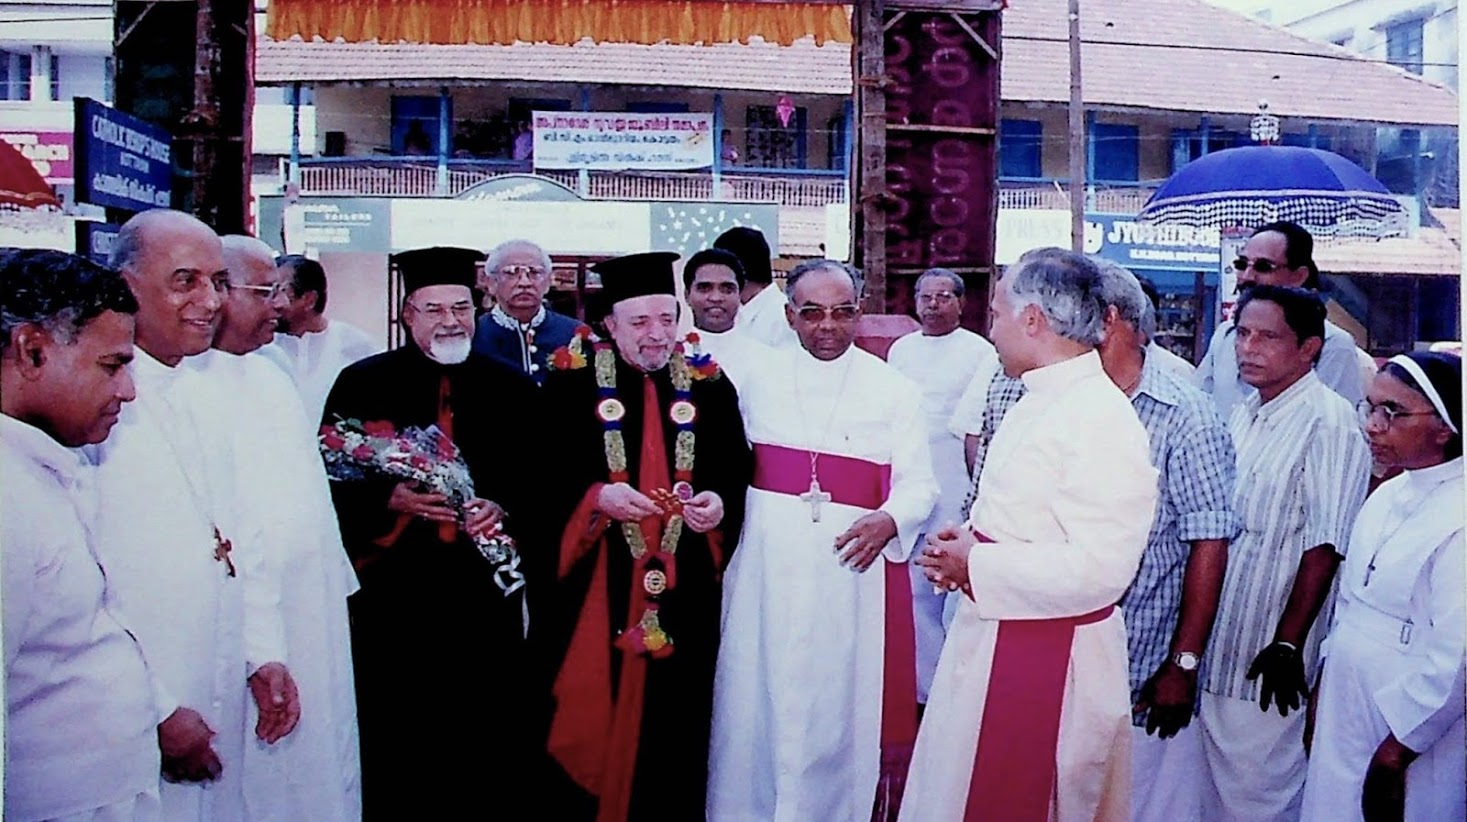 Reception to Patriarch Ignace Moussadaoud, Prefect of the Oriental Congregation on December 30, 2000.